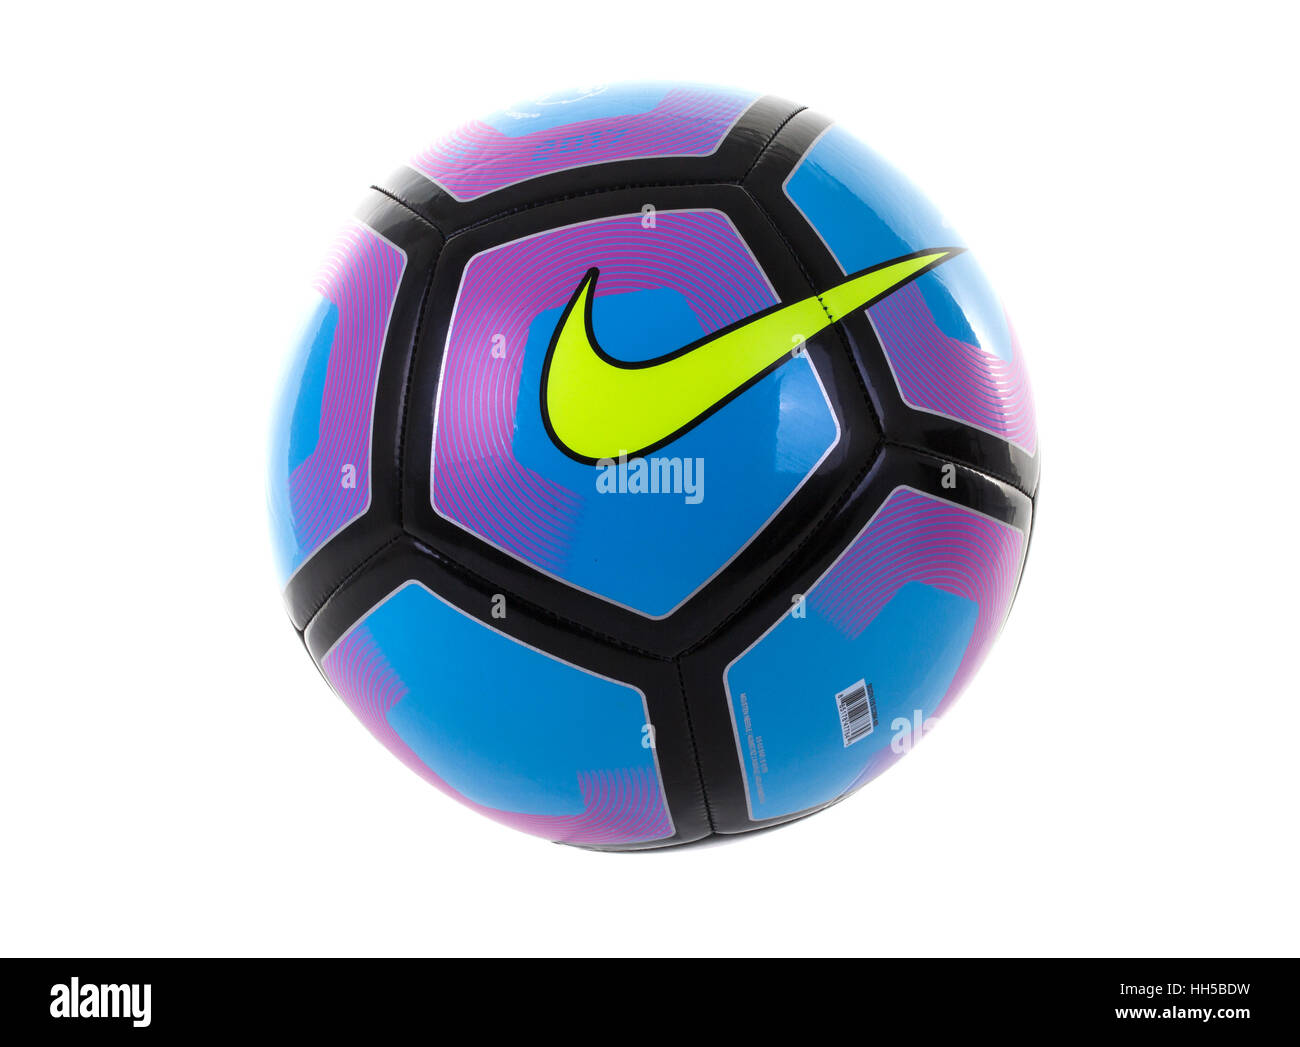 5901b133b Nike Pitch Football on white background, Nike Inc is an American  multinational corporation